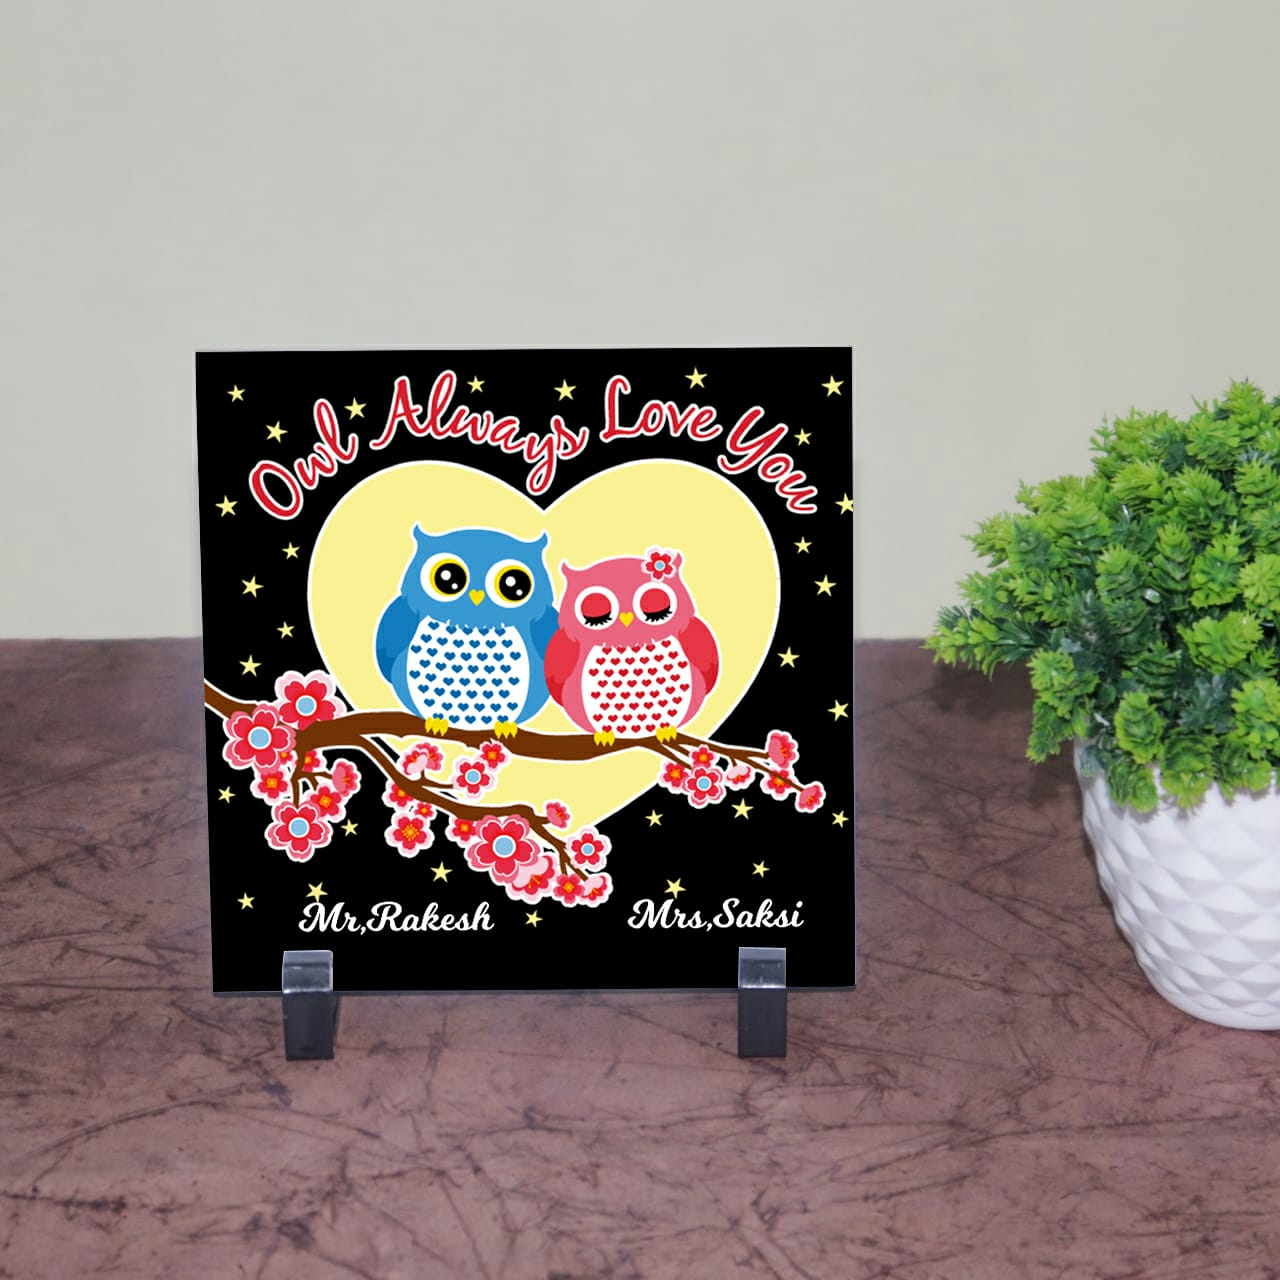 Always Love You Personalized Tile